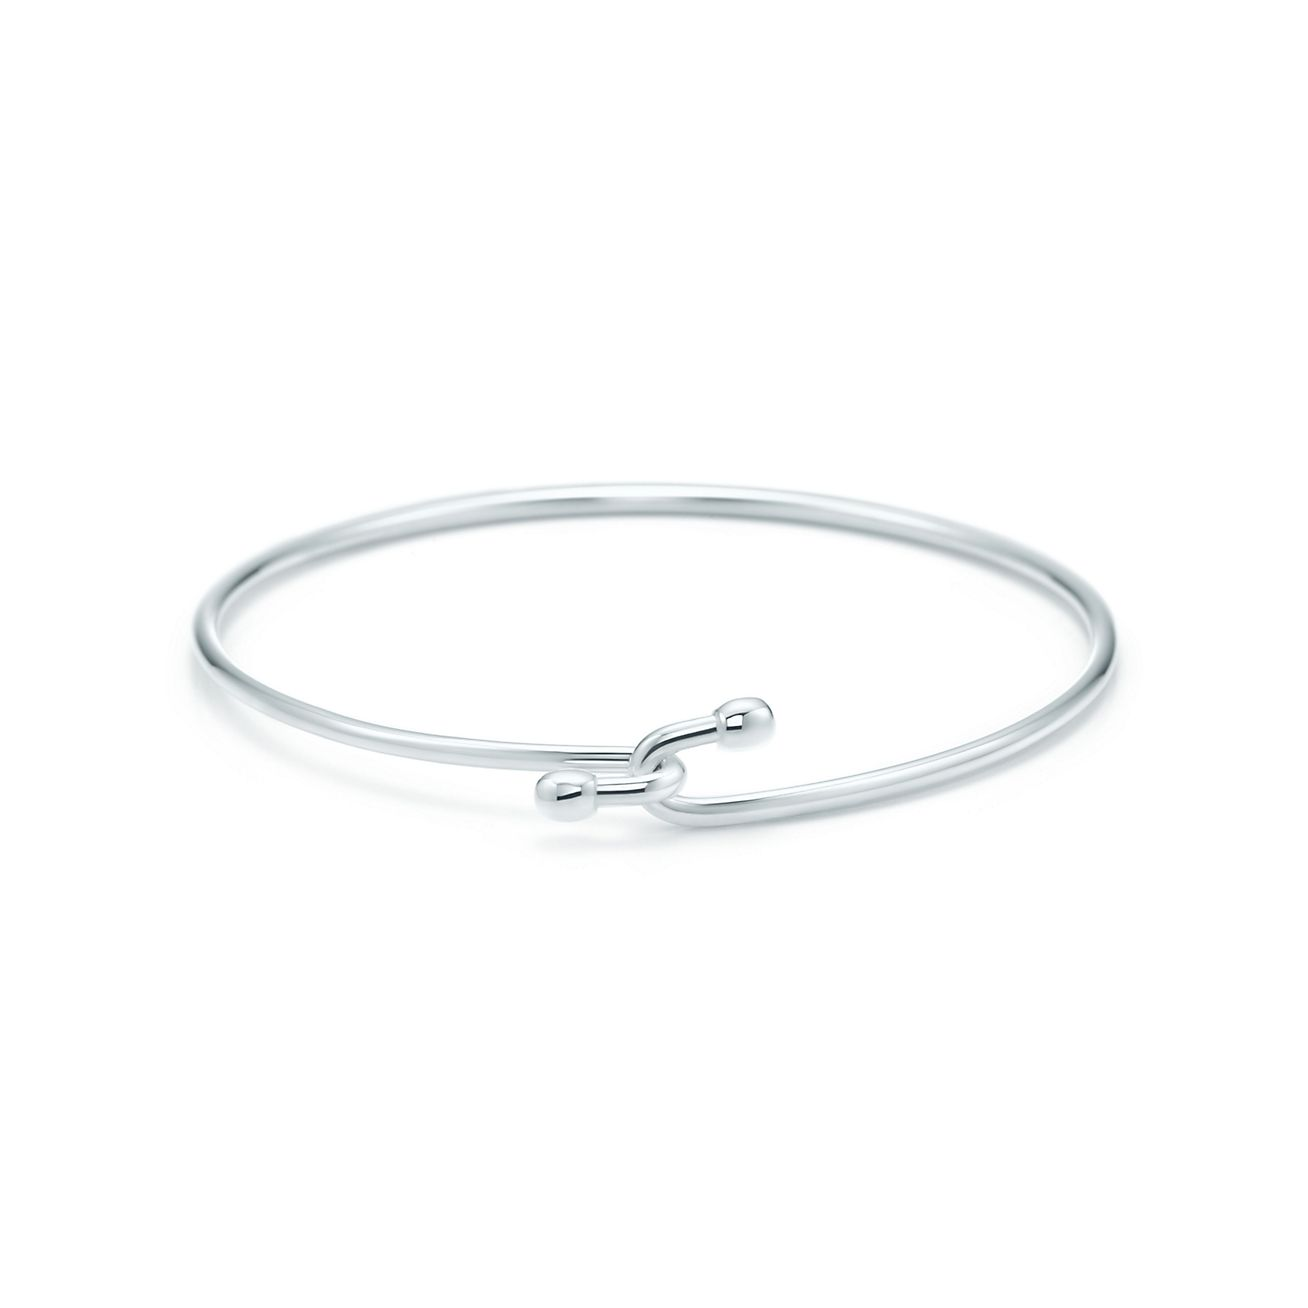 Wire bracelet in sterling silver, medium. | Tiffany & Co.